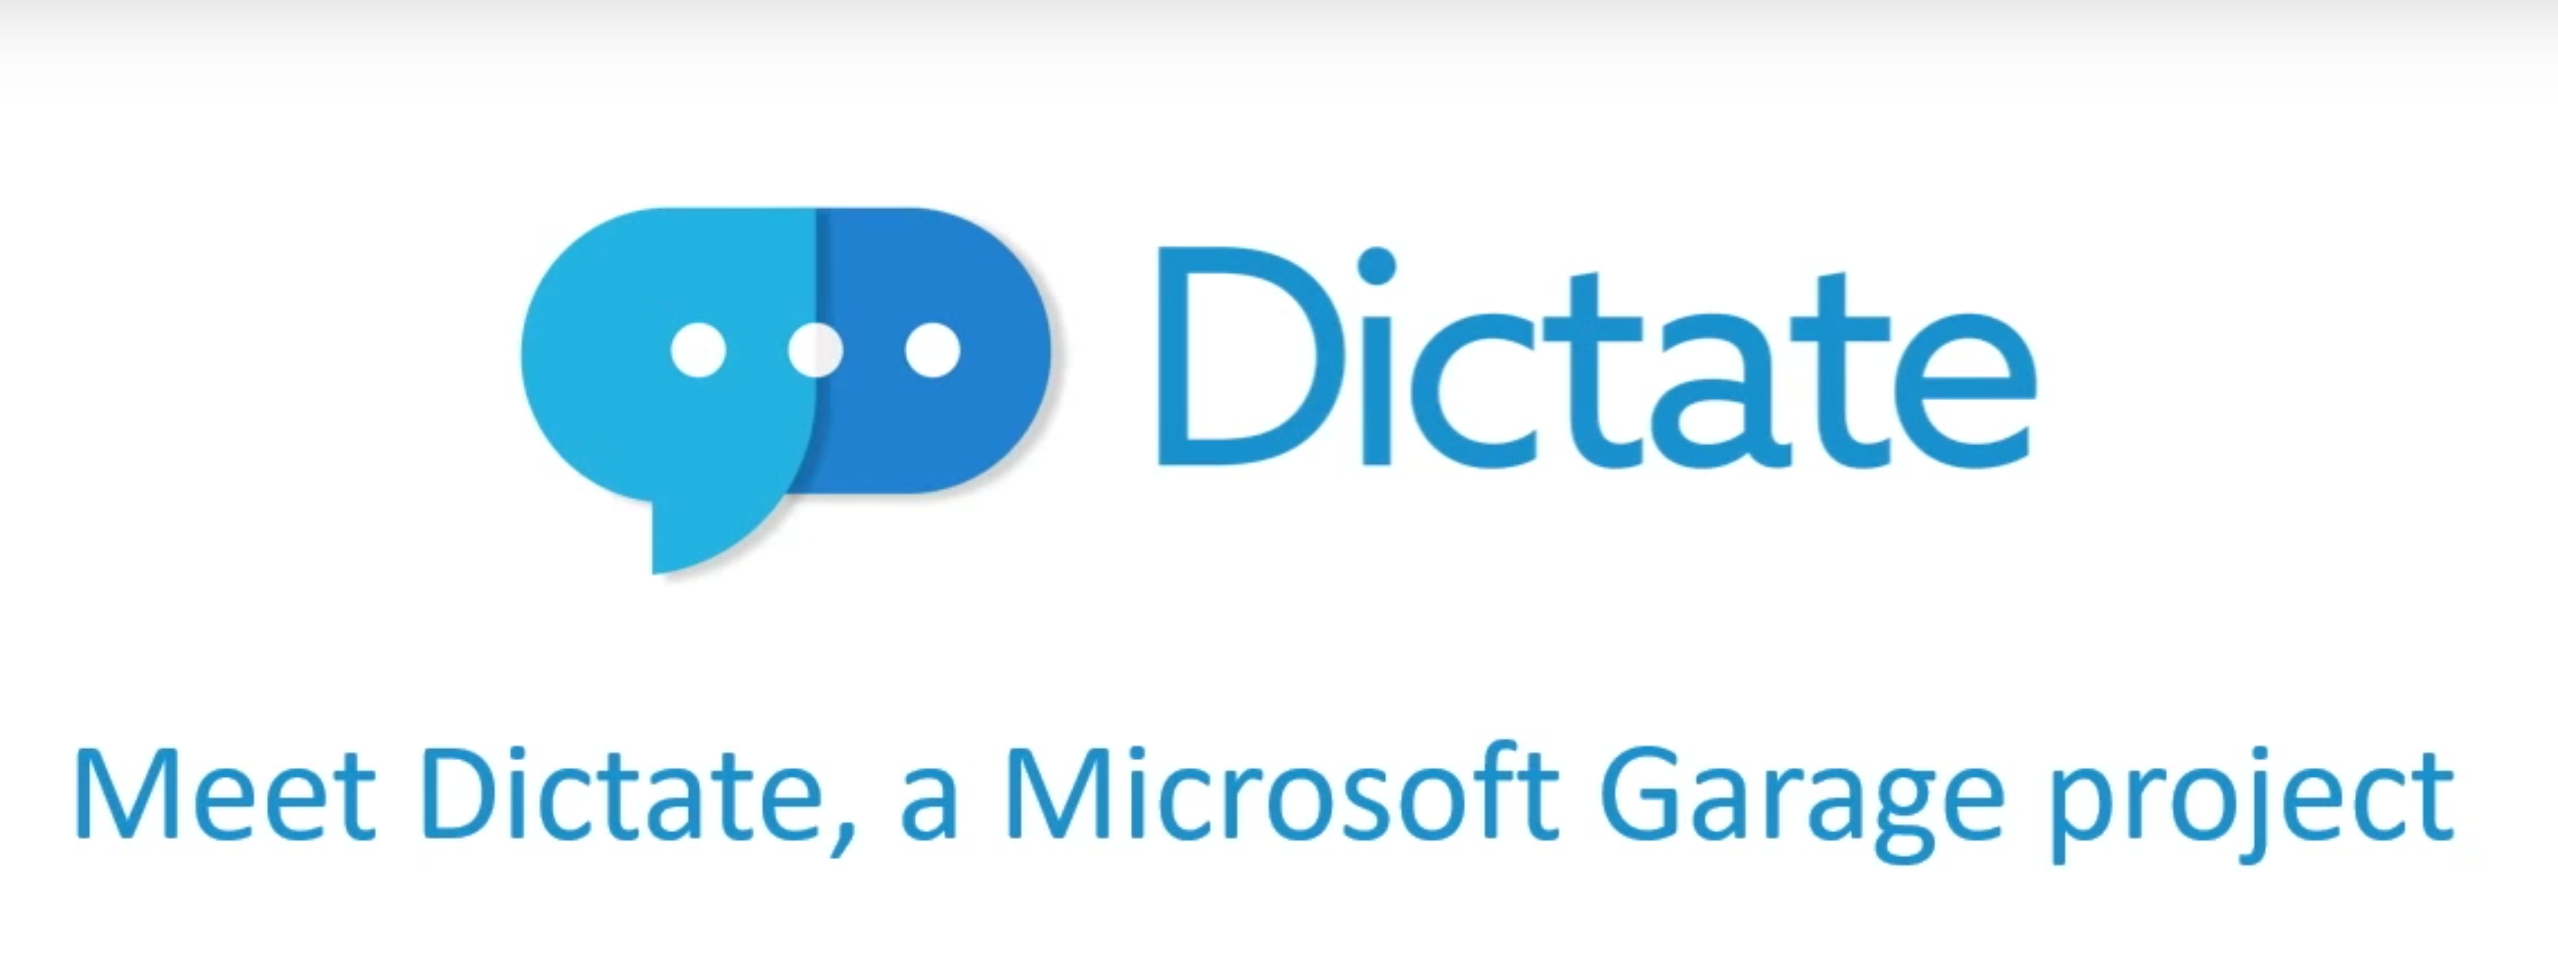 Microsoft's Dictate uses Cortana's speech recognition to enable